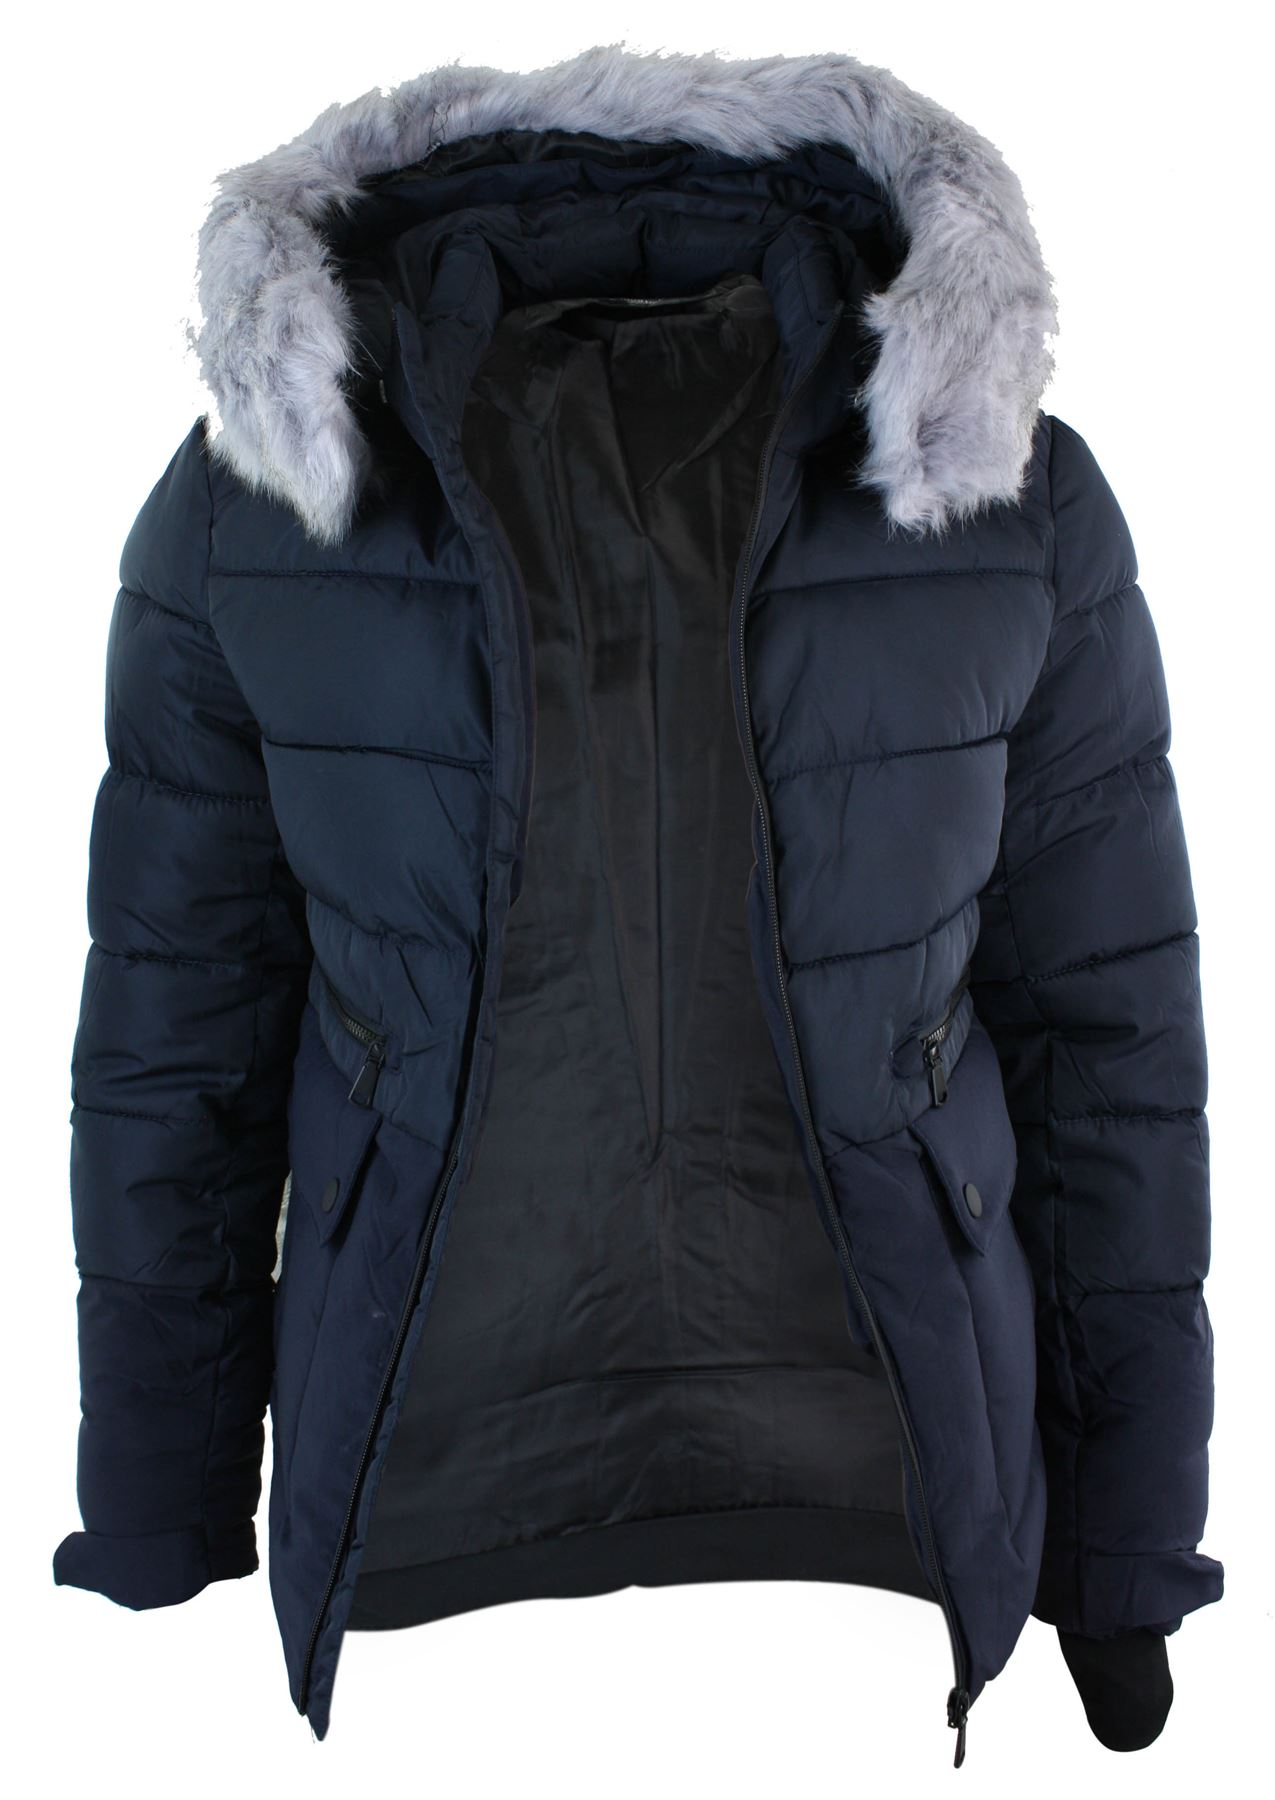 Mens Faux Fur Hood Puffer Quilted Jacket Slim Fit Navy Black ... : mens navy quilted coat - Adamdwight.com